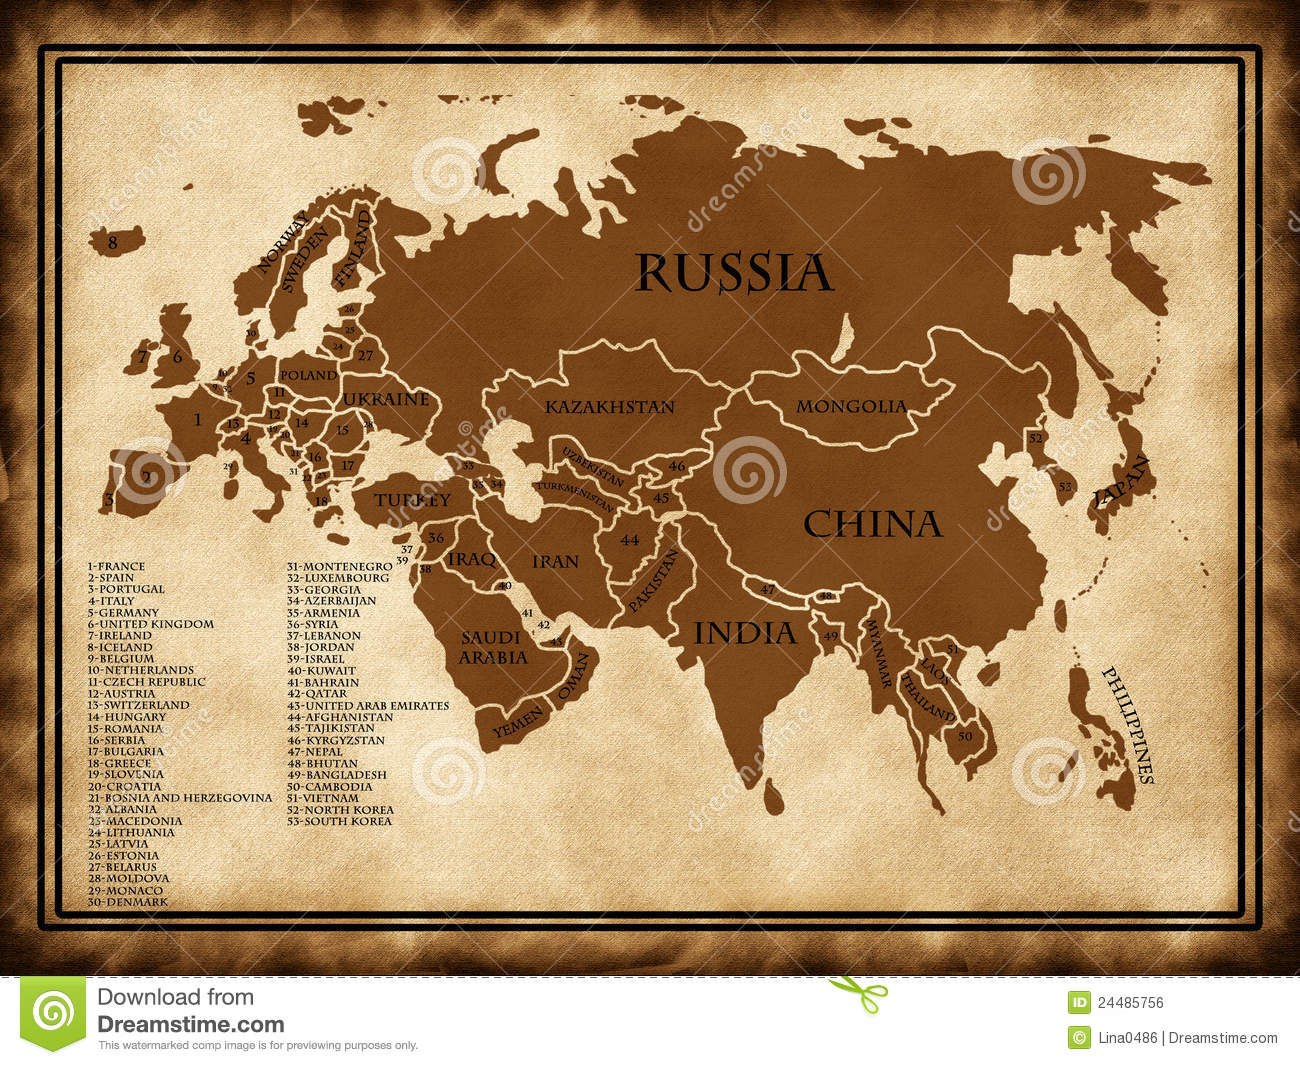 map-eurasia-24485756 Map Of Only Afghanistan on map of only congo, map of only switzerland, map of only middle east, map of only equatorial guinea, map of only mexico, map of only lithuania, map of only latvia, map of only canada, map of only iran, map of only saudi arabia, map of only bolivia, map of only guatemala, map of only norway, map of only kuwait, map of only el salvador, map of only south africa, map of only pakistan, map of only southern italy, map of only france, map of only eurasia,